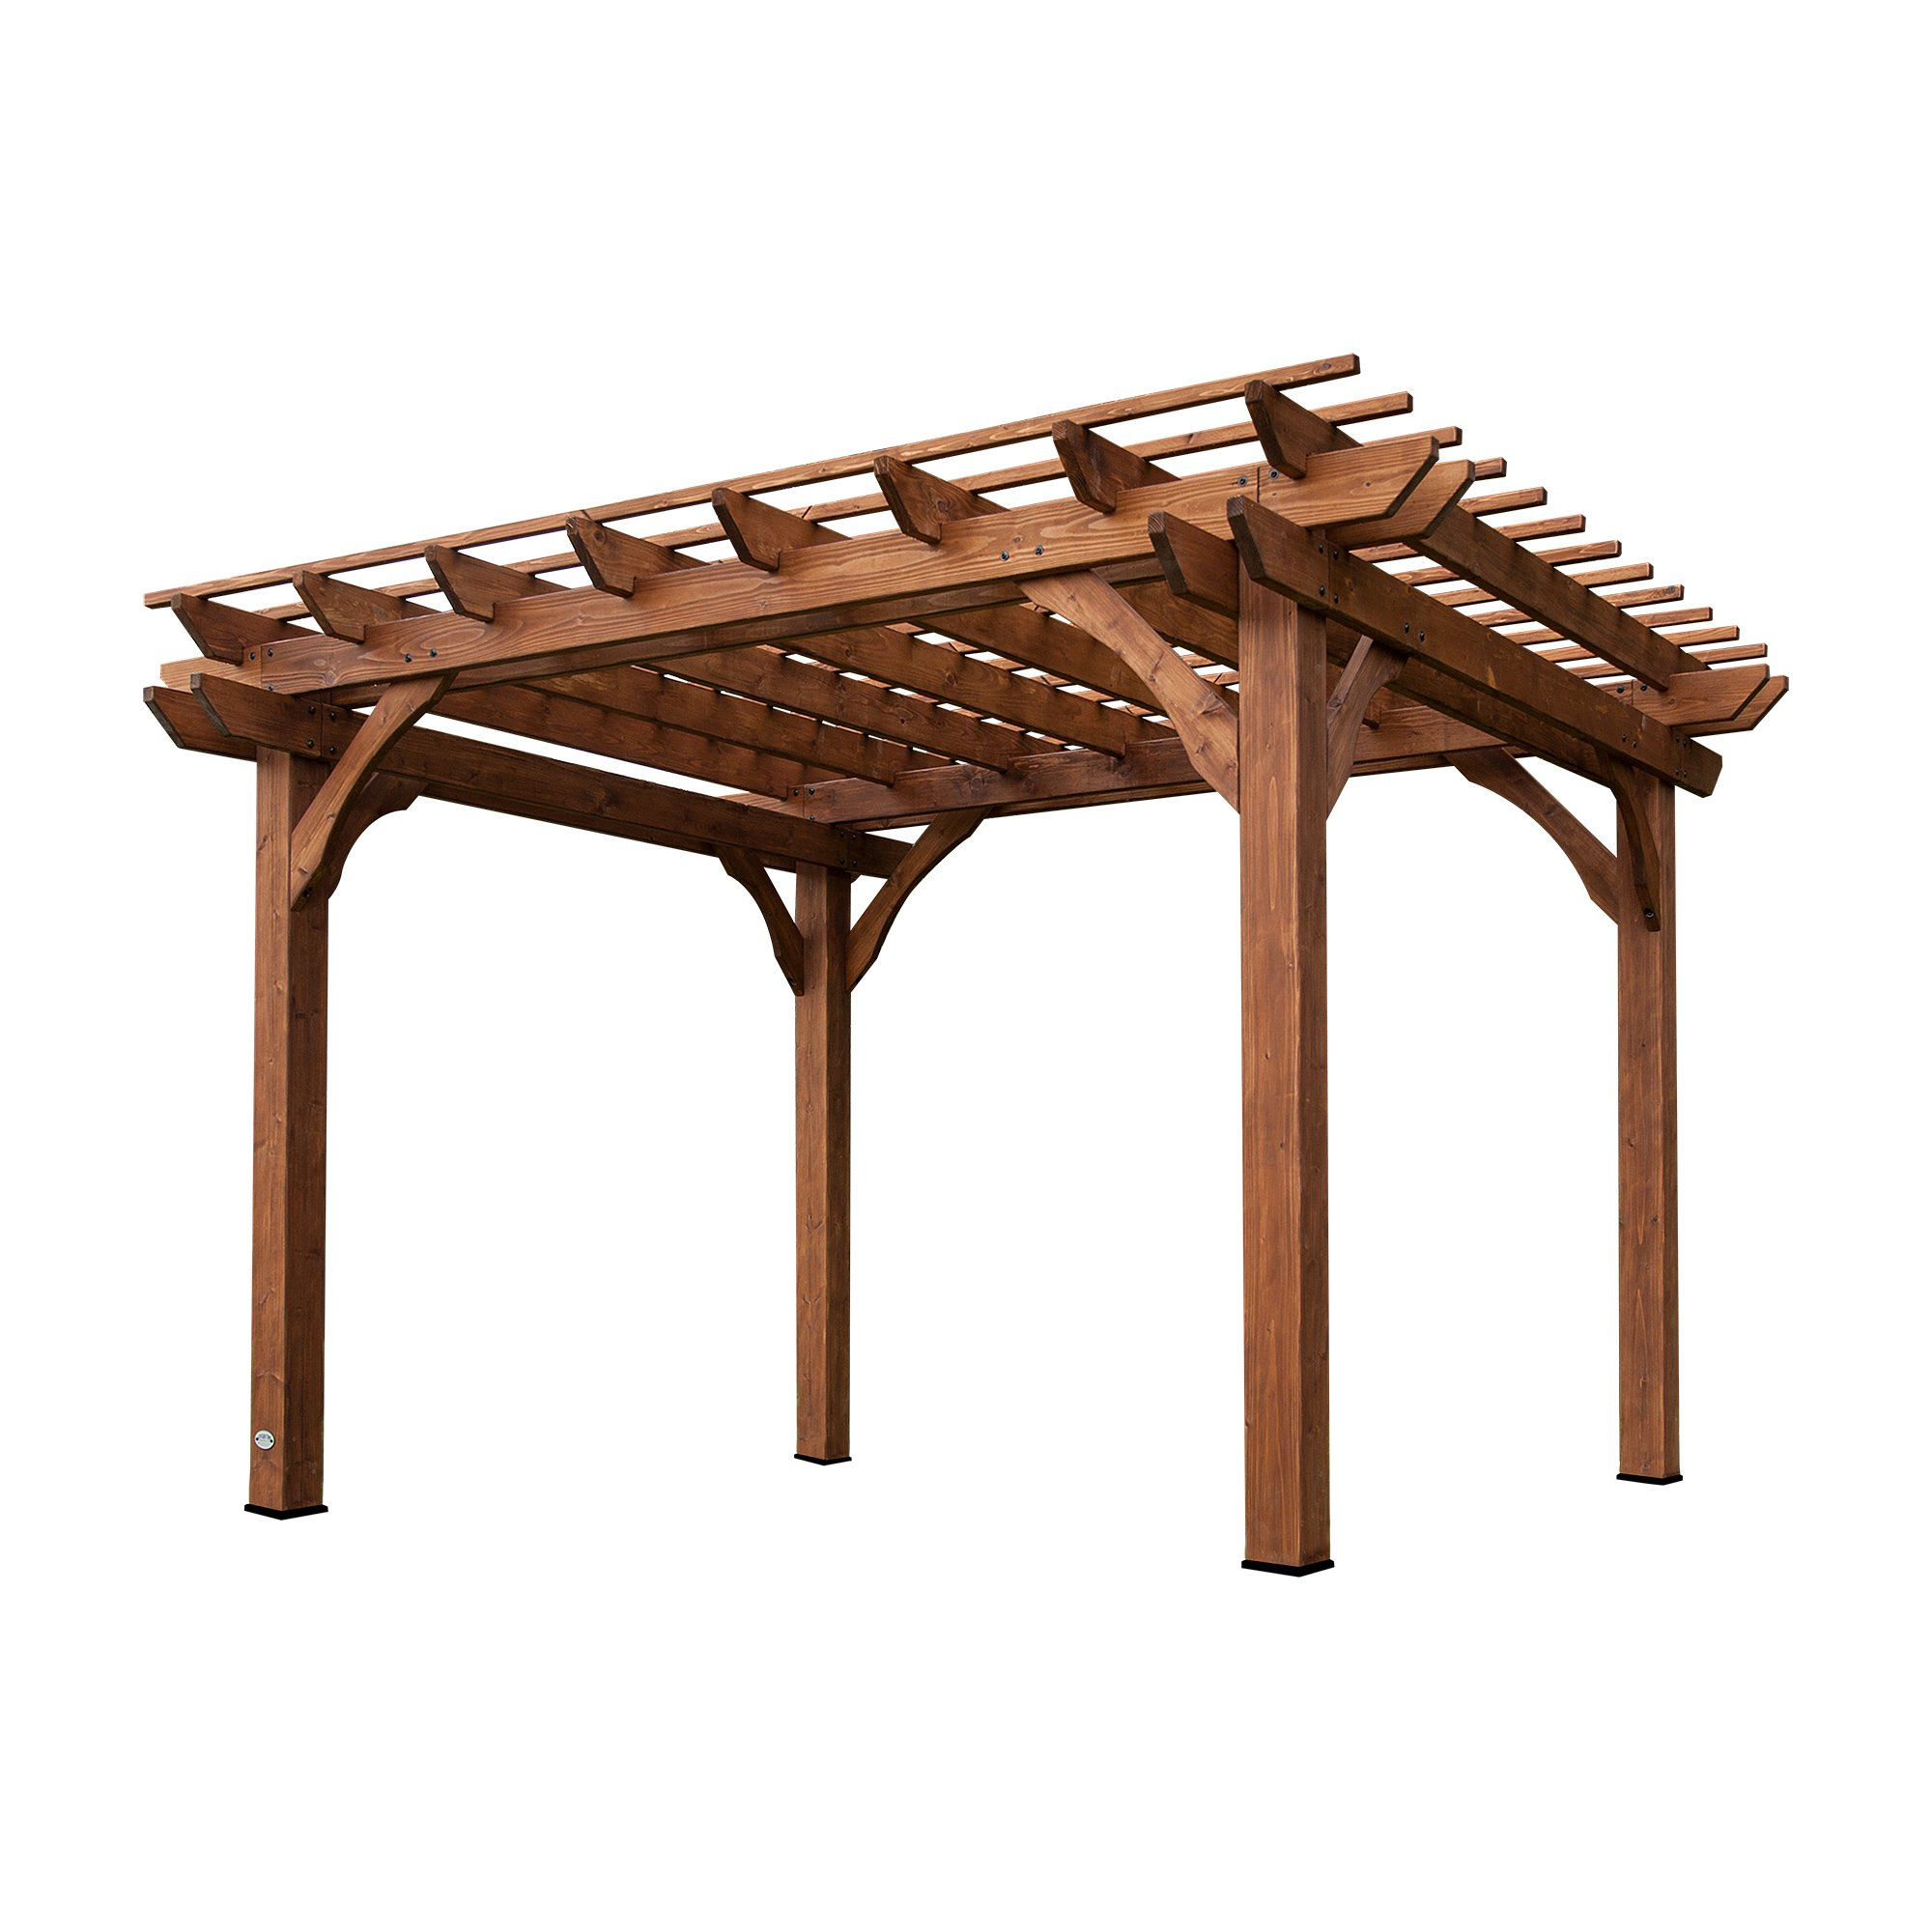 Backyard Discovery Cedar Pergola 12\u0027 by ...  sc 1 st  Amazon.com & Patio Cover Kit: Amazon.com